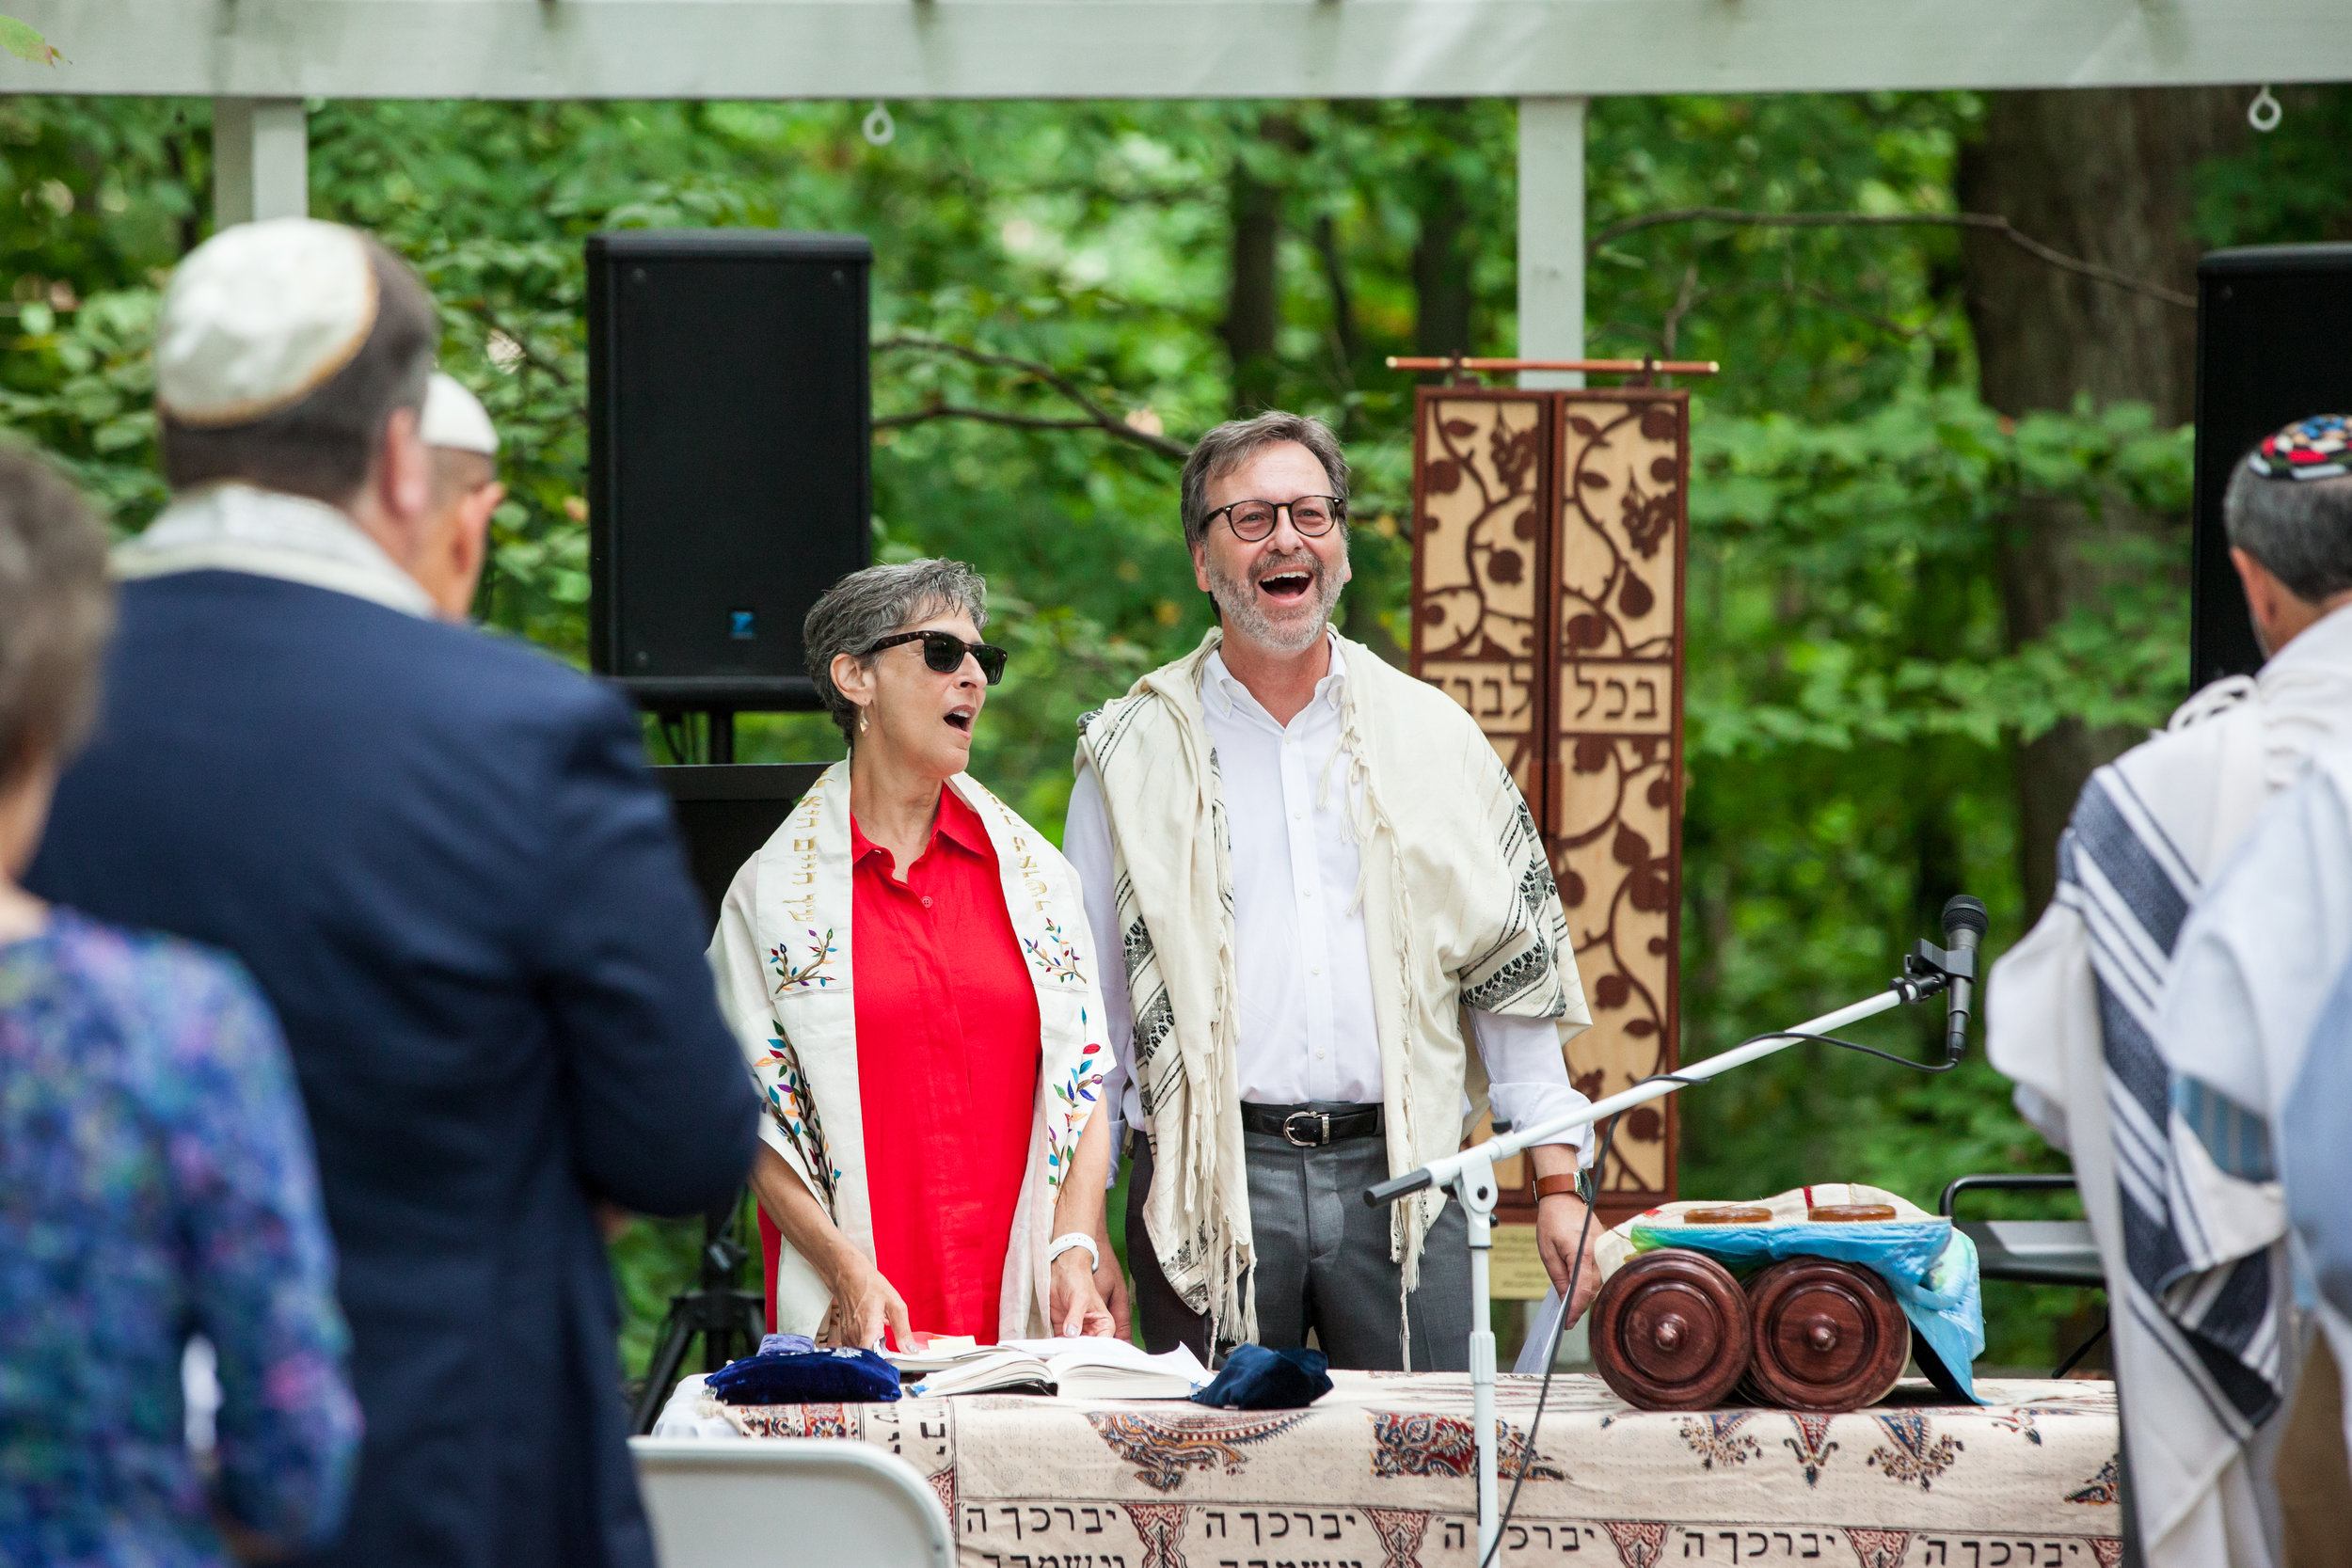 Rabbi JoHanna Potts and Rabbi Evan Krame